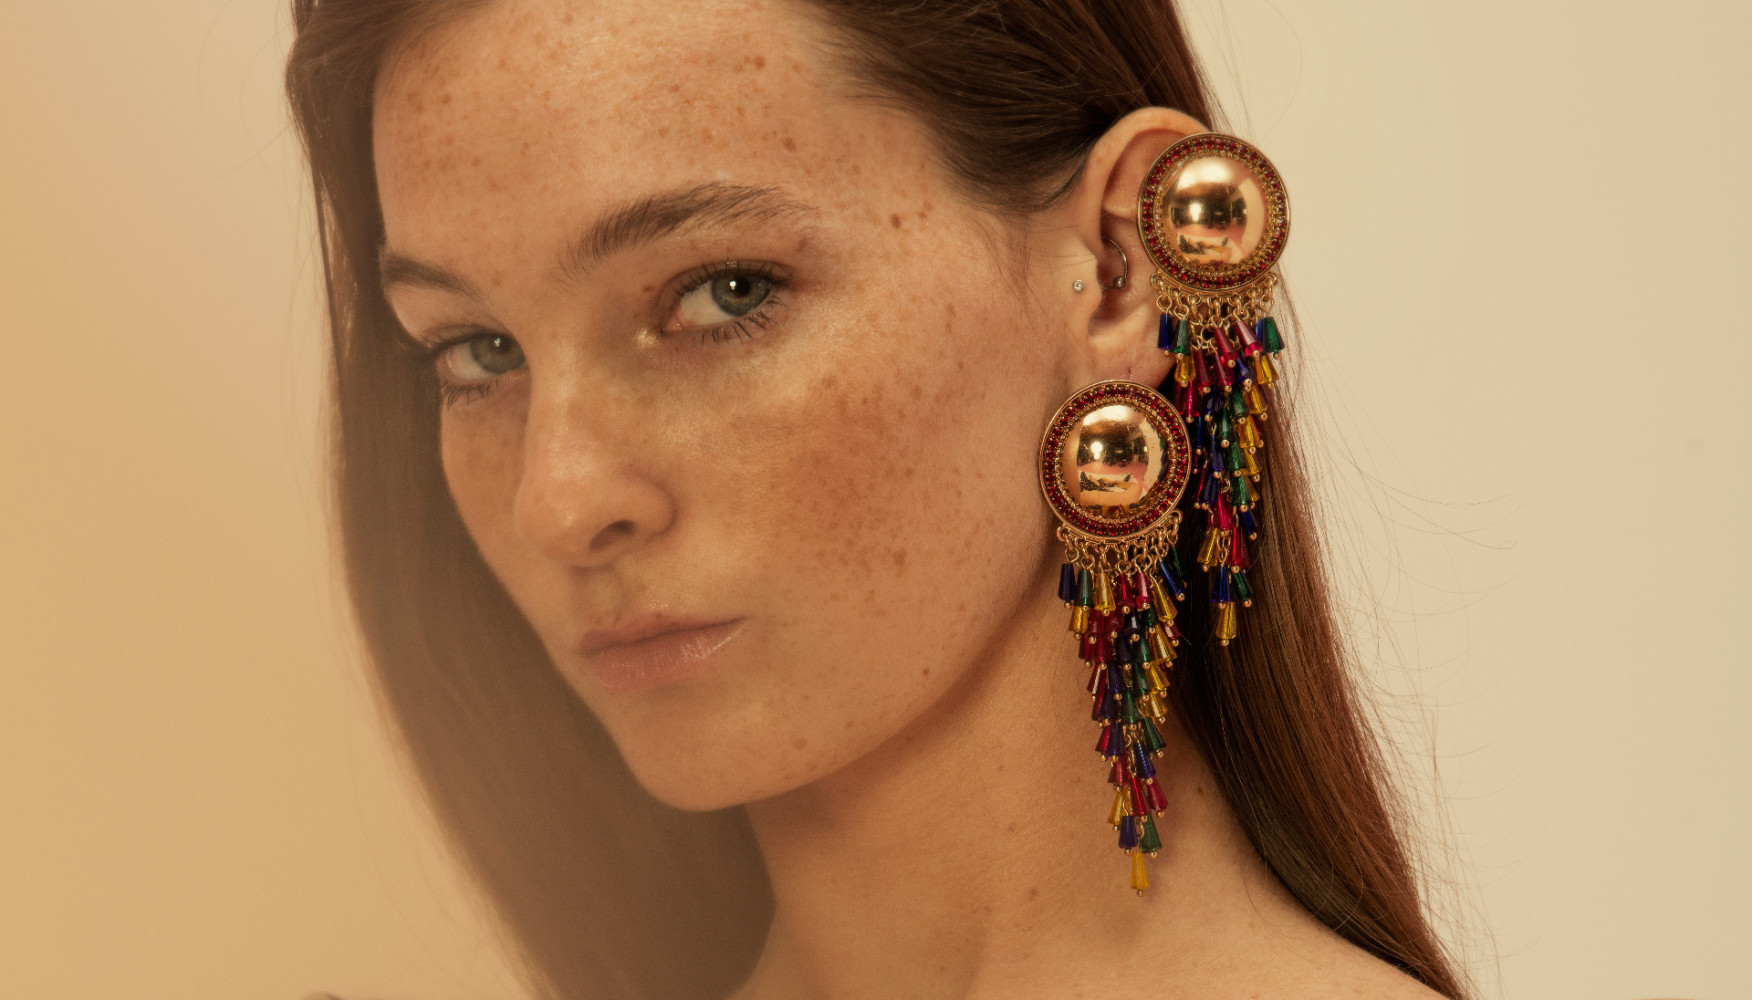 HOW TO MATCH A LOST EARRING - GABRIELLE WUNDERLY